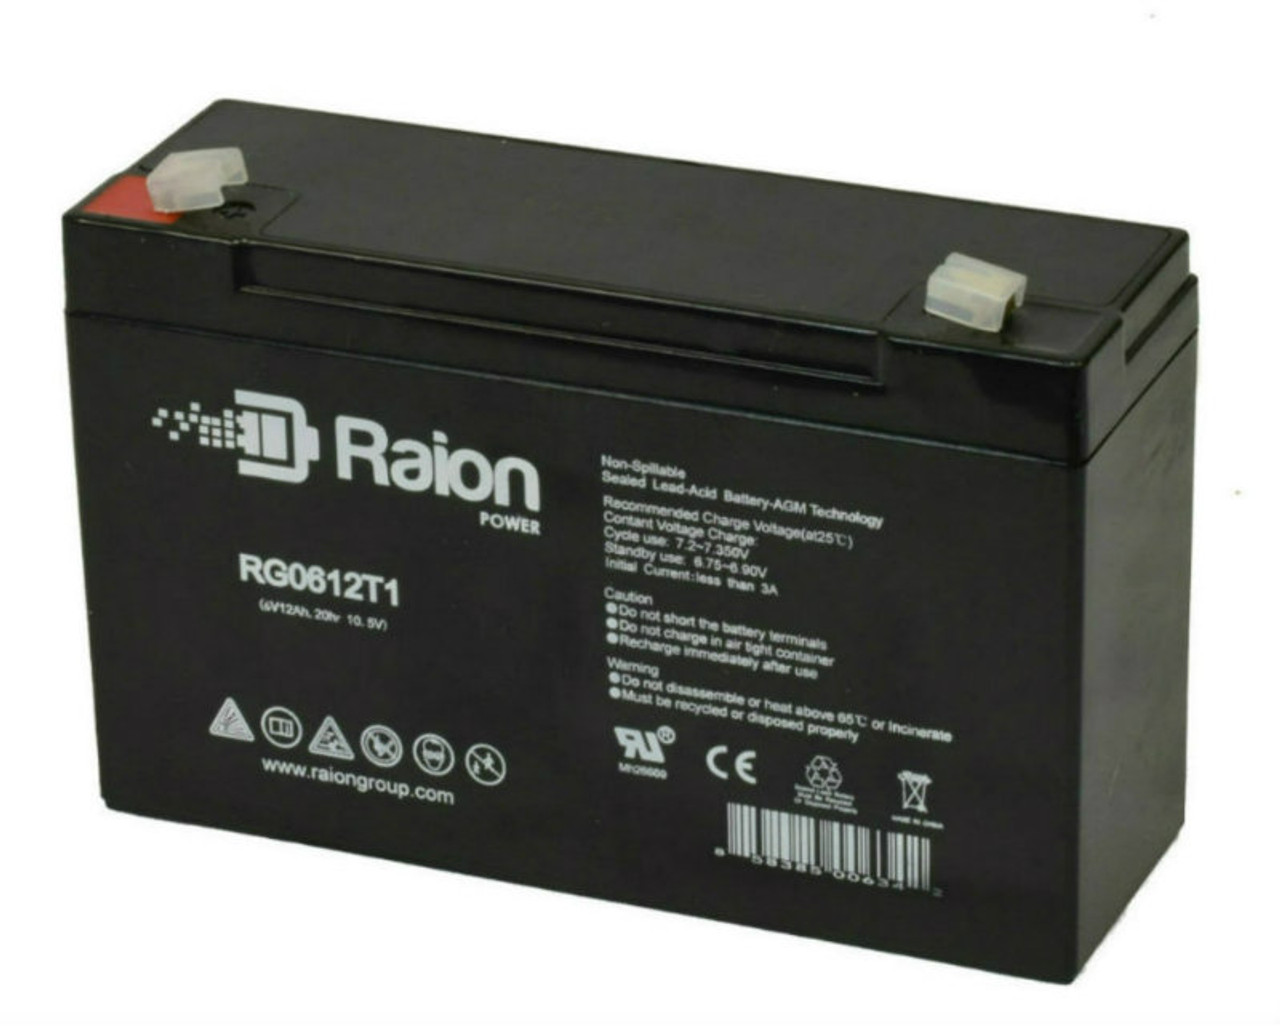 Raion Power RG06120T1 Replacement Battery Pack for Light Alarms 6RPG3 emergency light